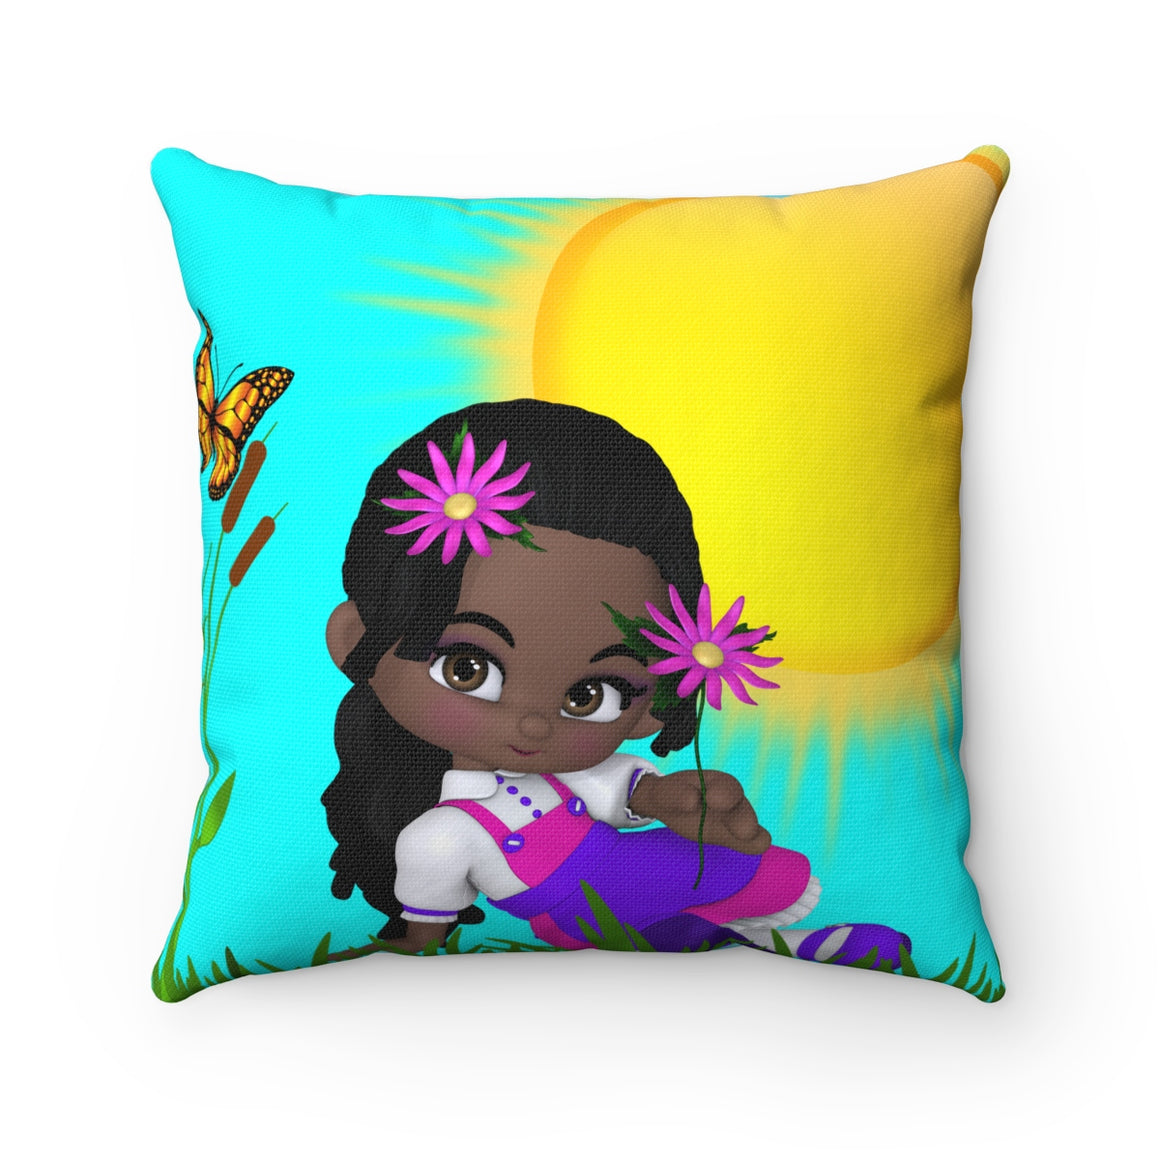 My Fabulous Style Beautiful Kids Throw Pillow--Little One In the Sun Square Throw Pillow for Children